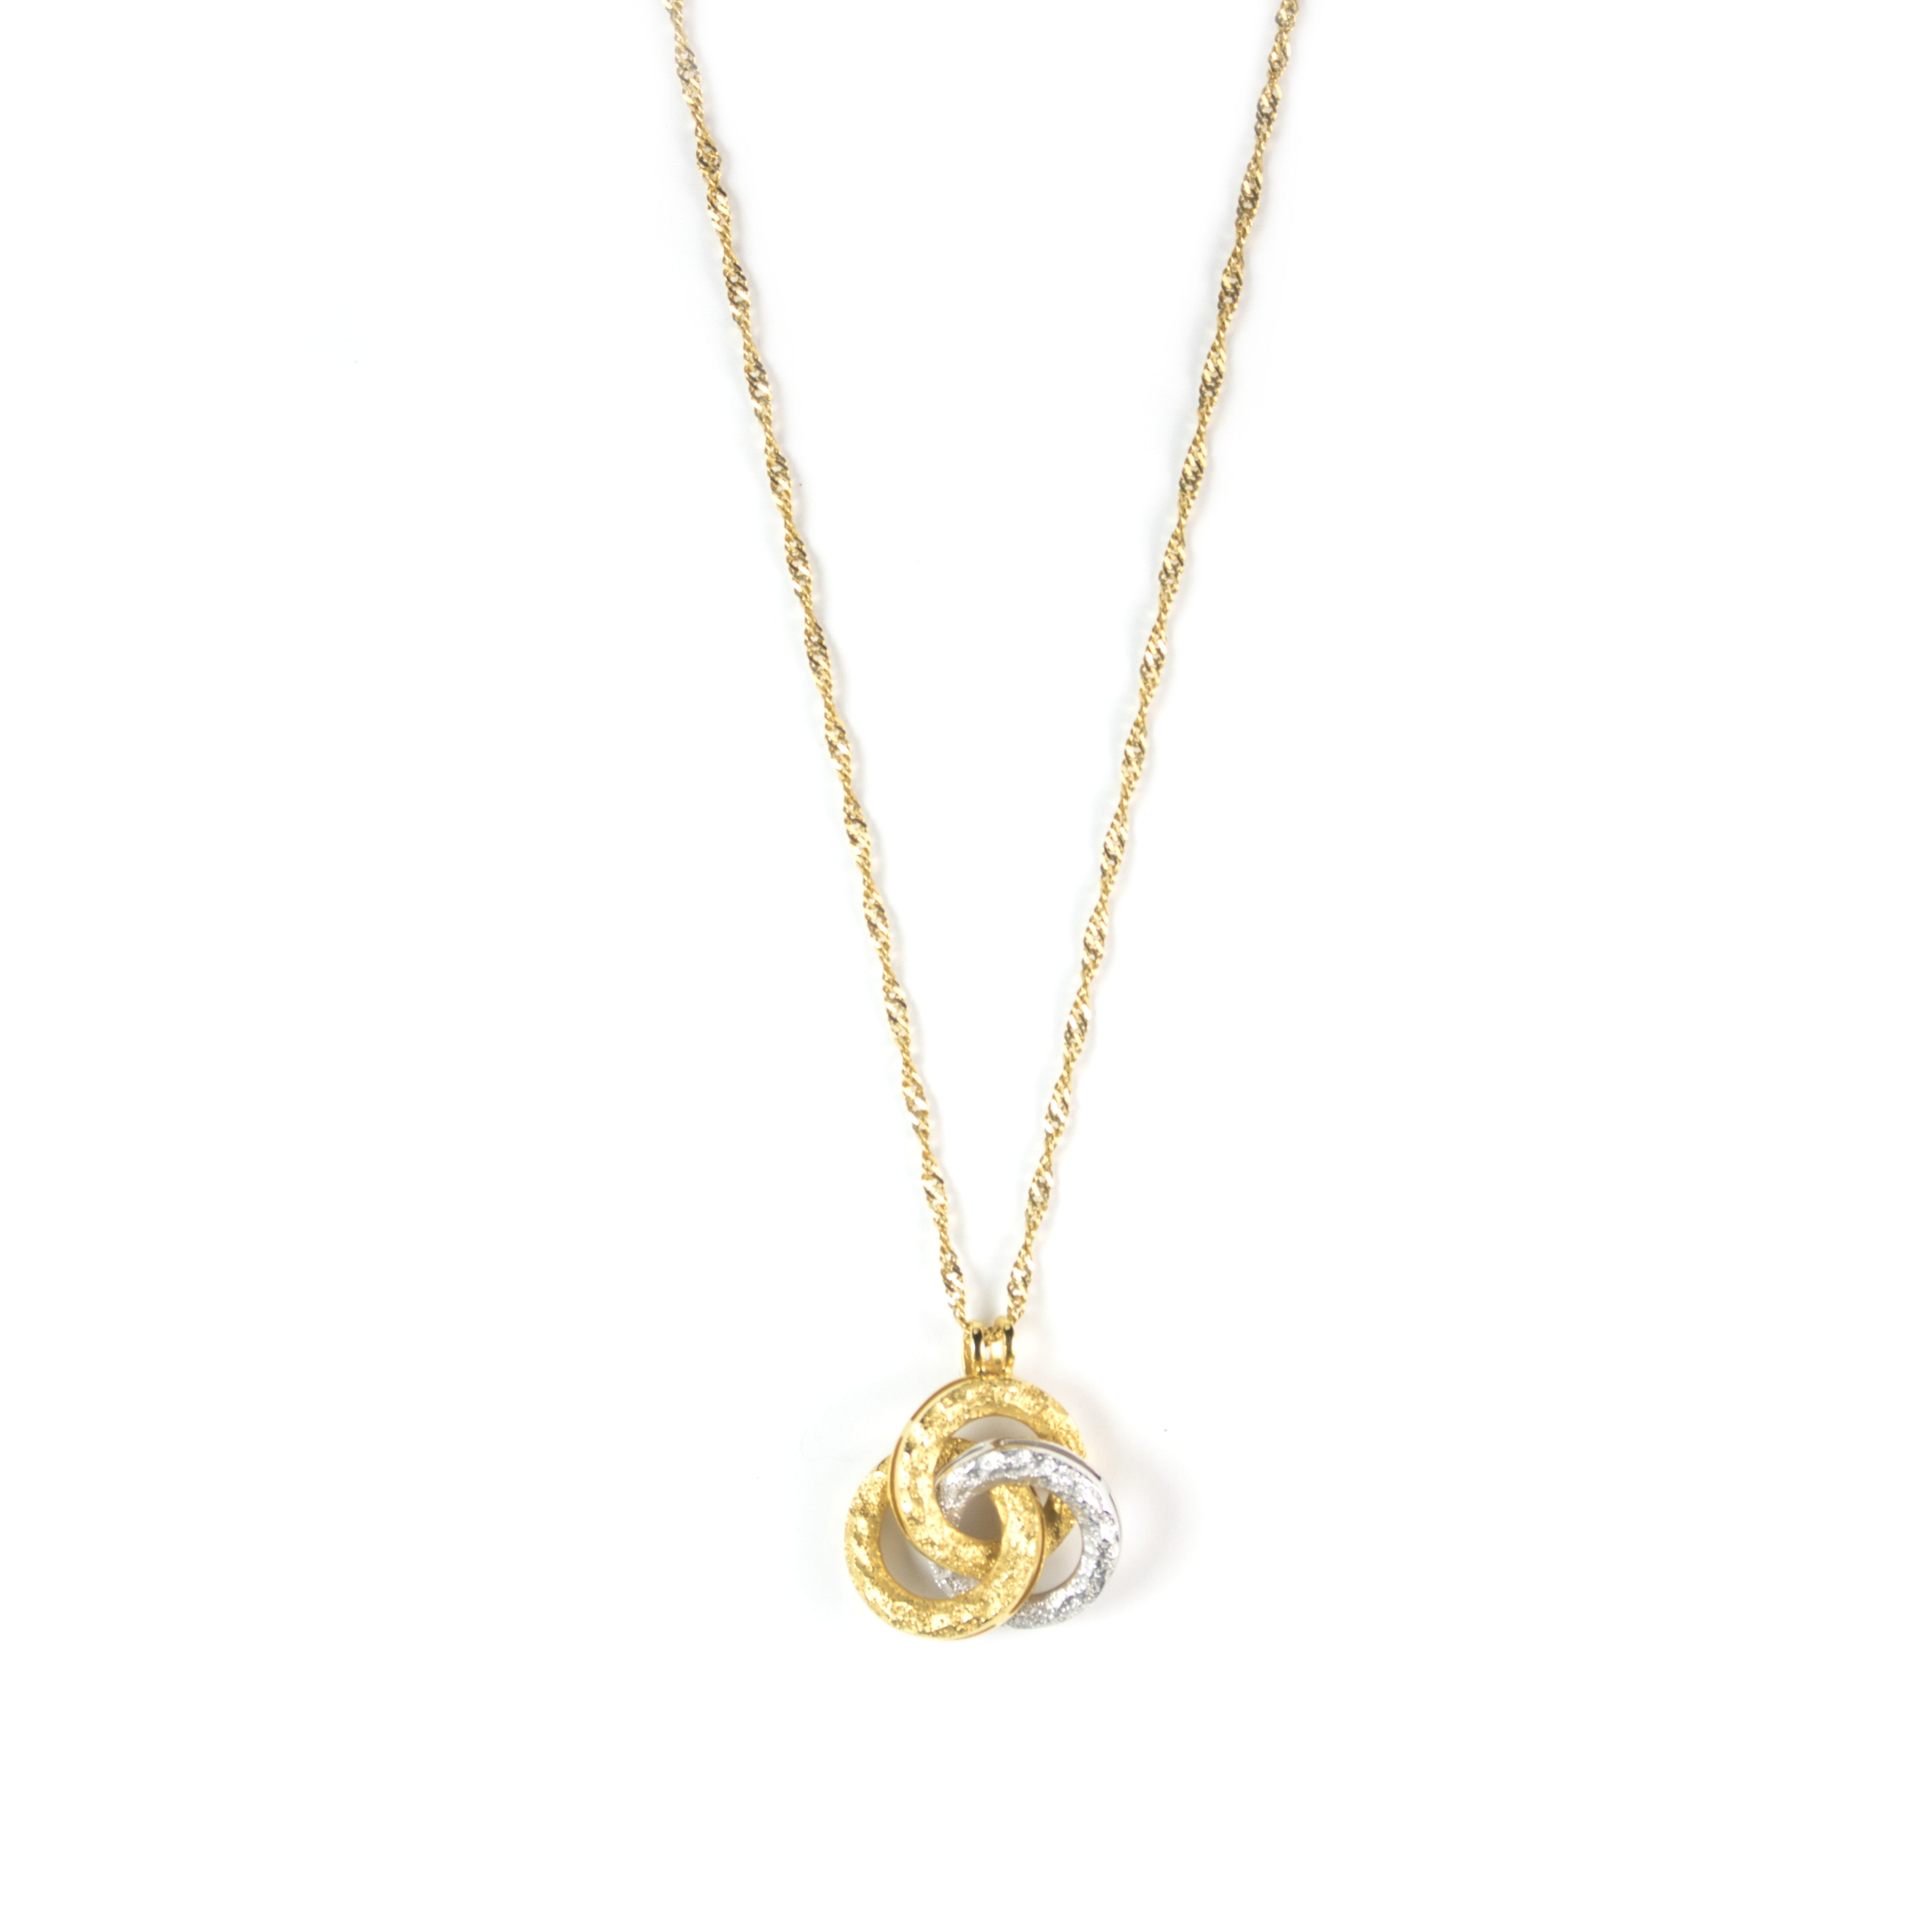 Gold Entangled Rings Necklace – Dubai Gold